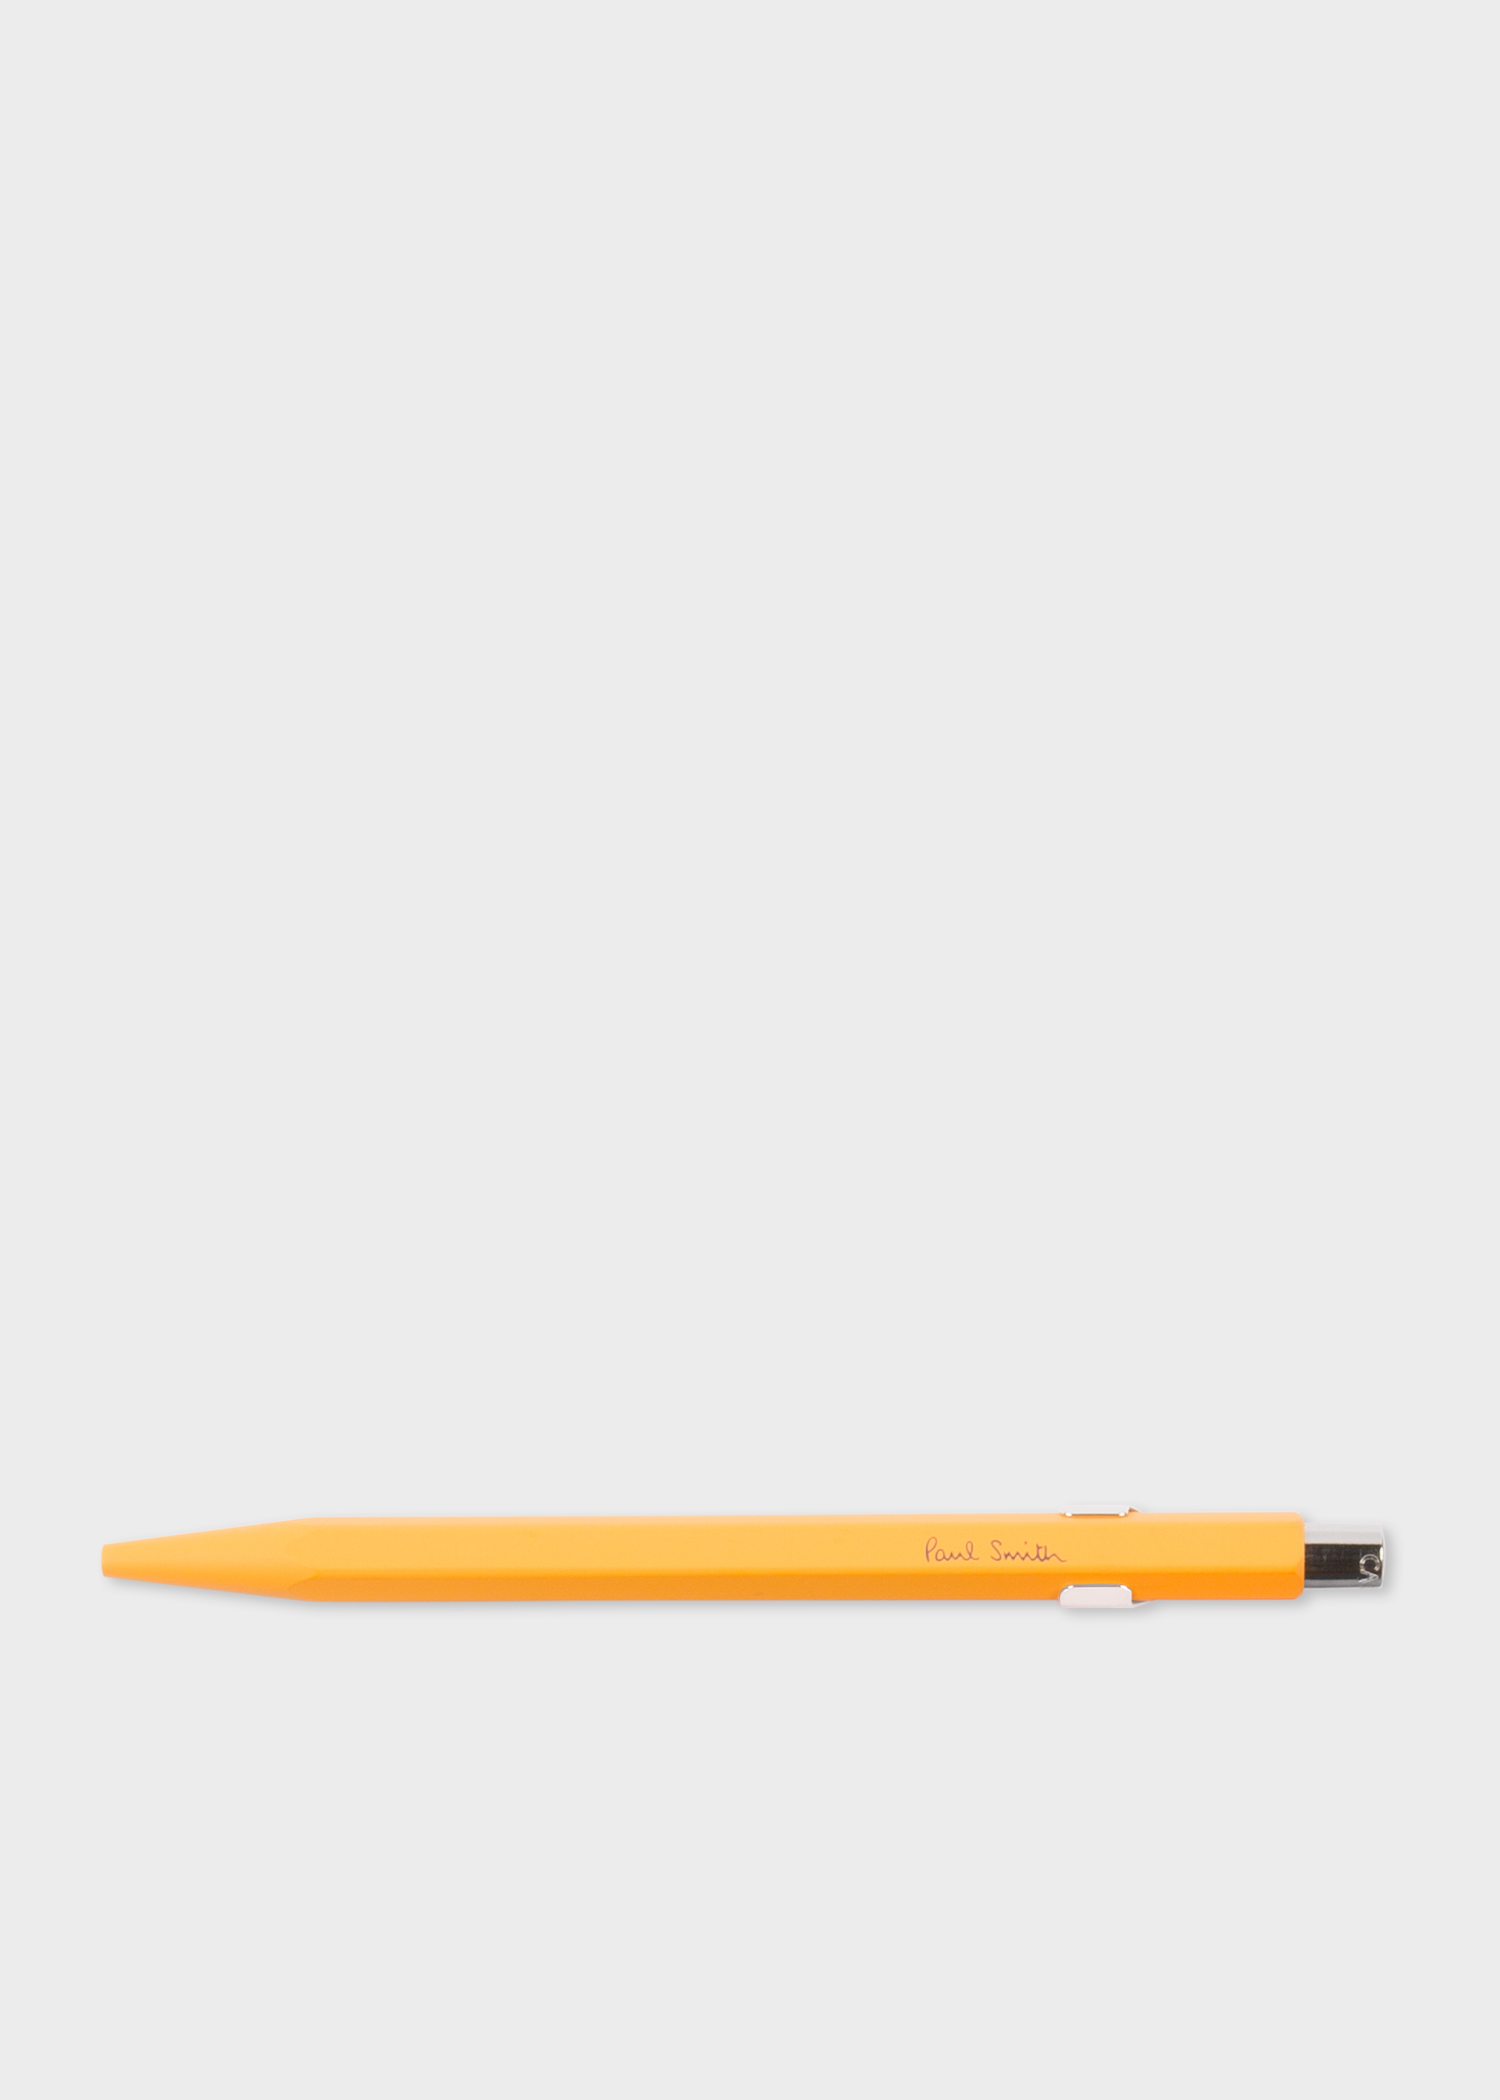 Caran d'Ache + Paul Smith - 849 Orange Ballpoint Pen